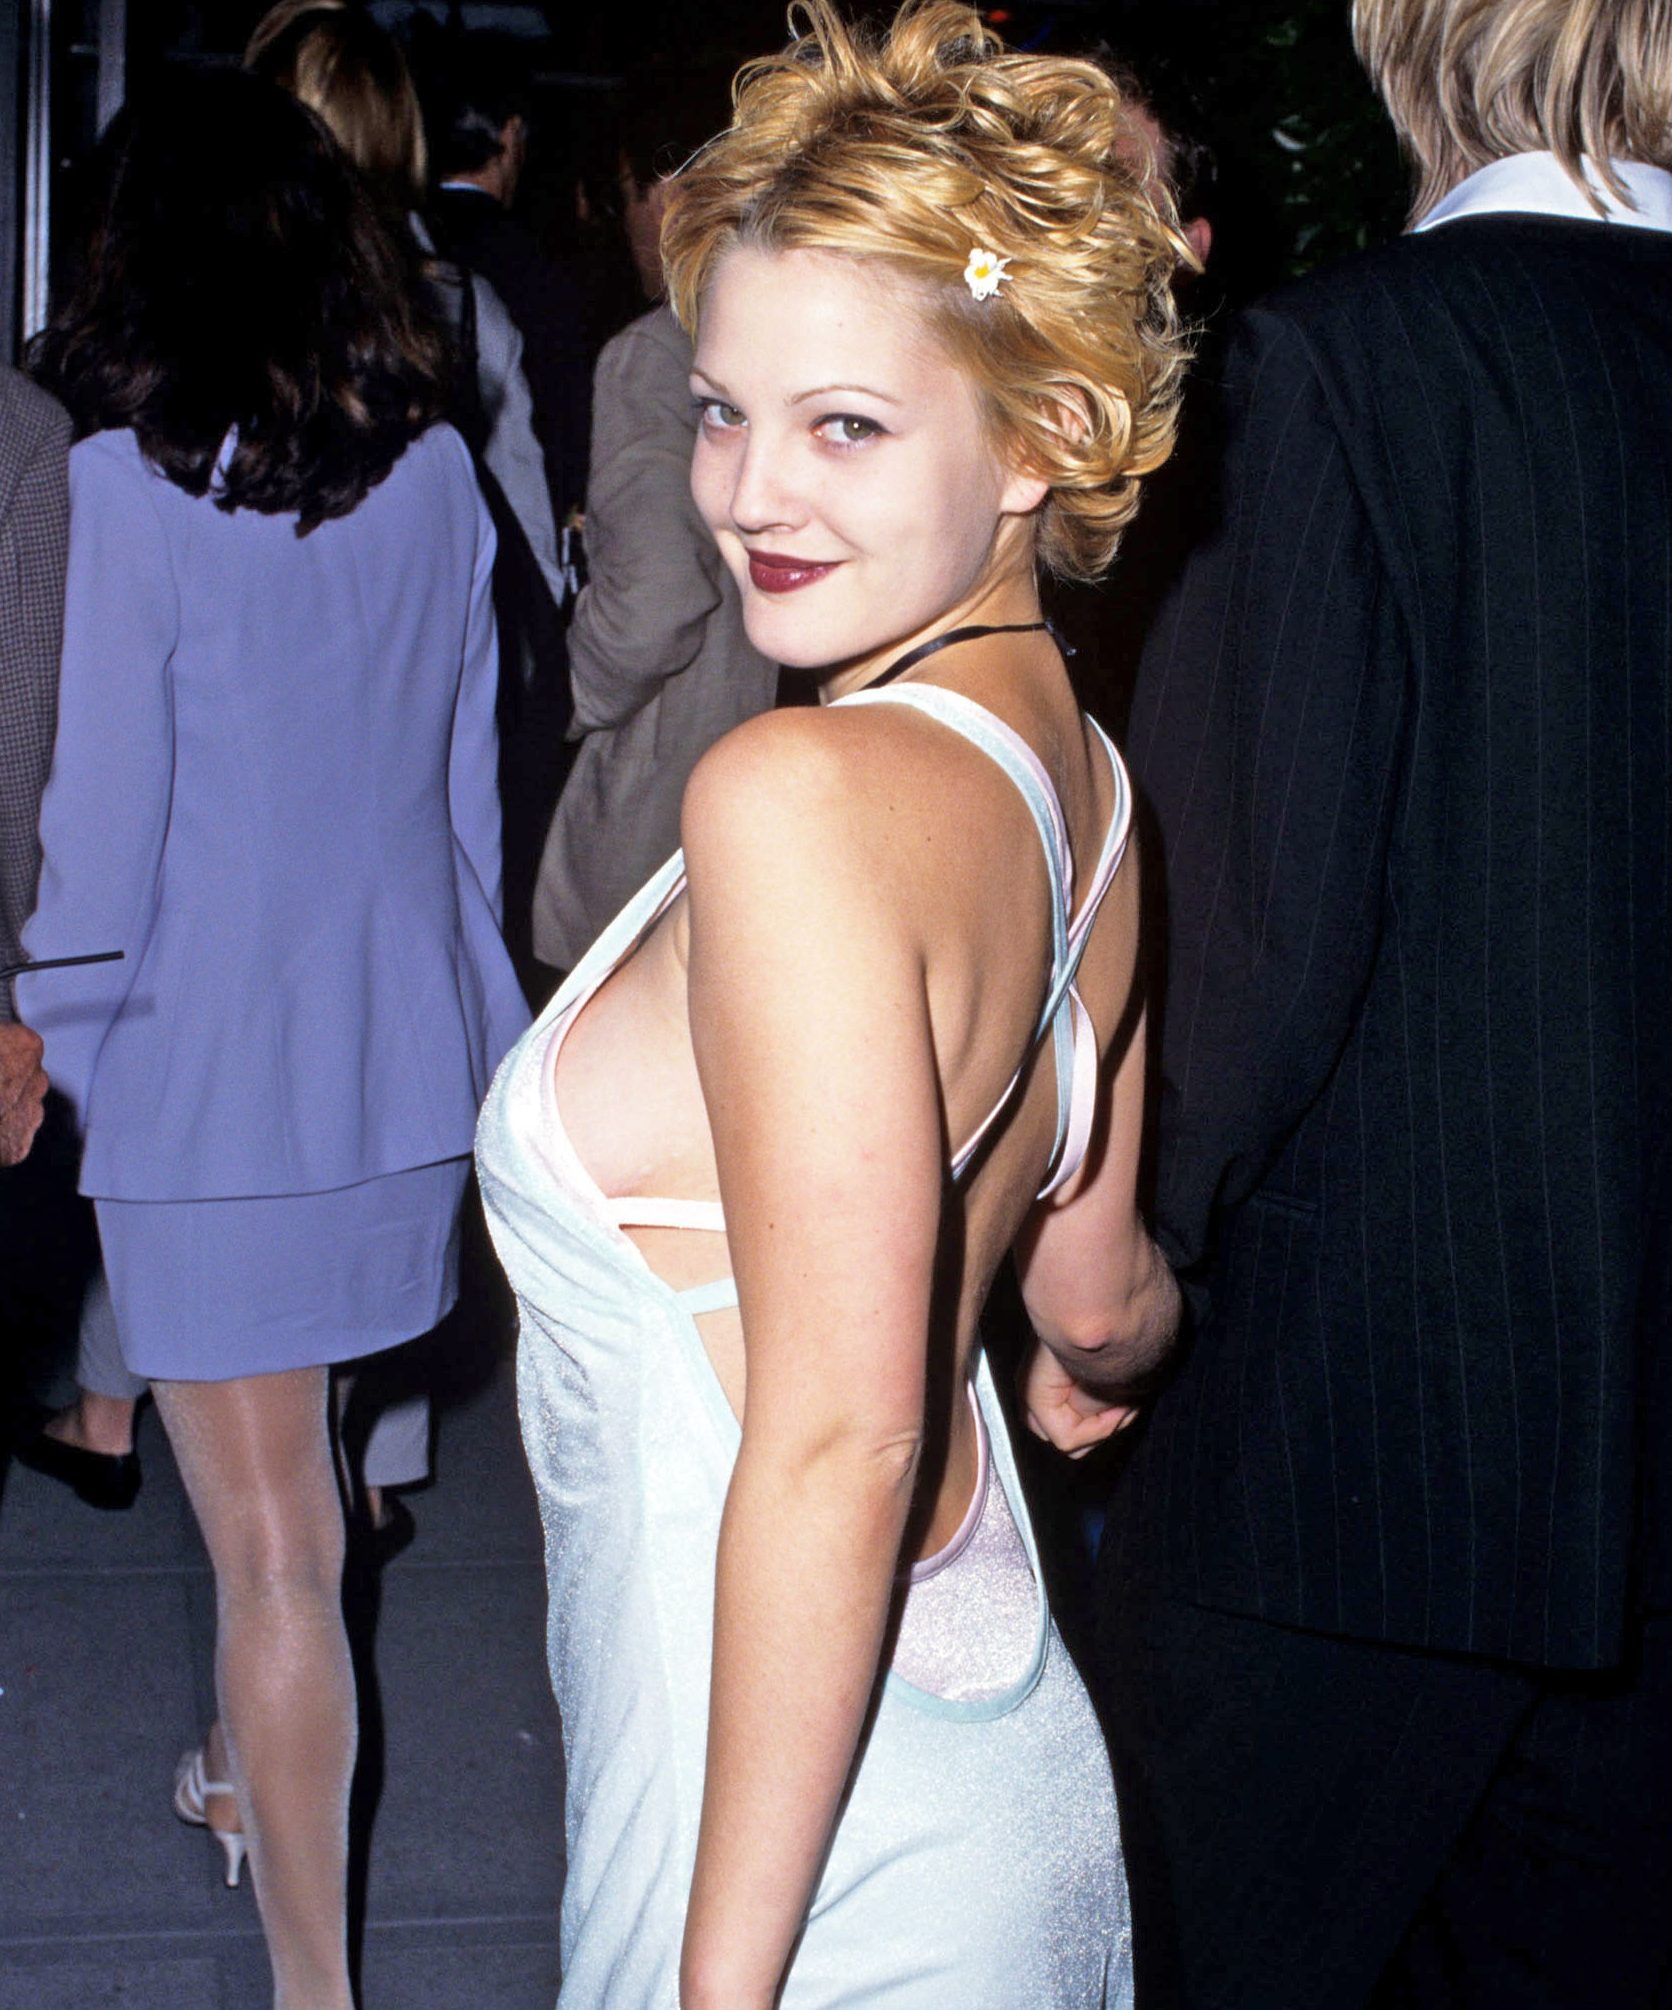 tcont2 e1584447657219 20 Things You Might Not Have Realised About Drew Barrymore